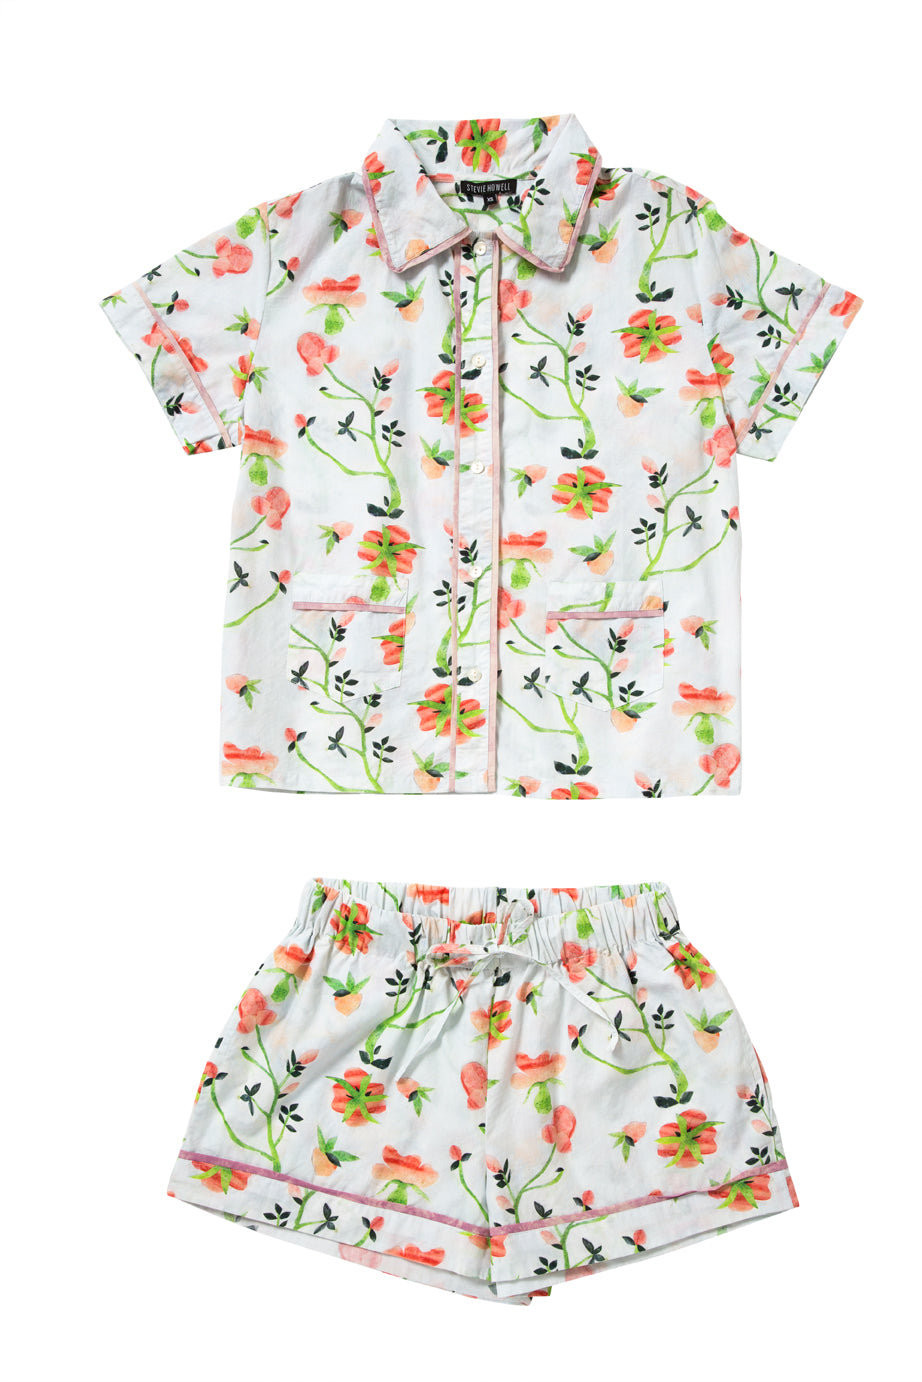 Dianthus Cotton Pajama Set (Extra Small)